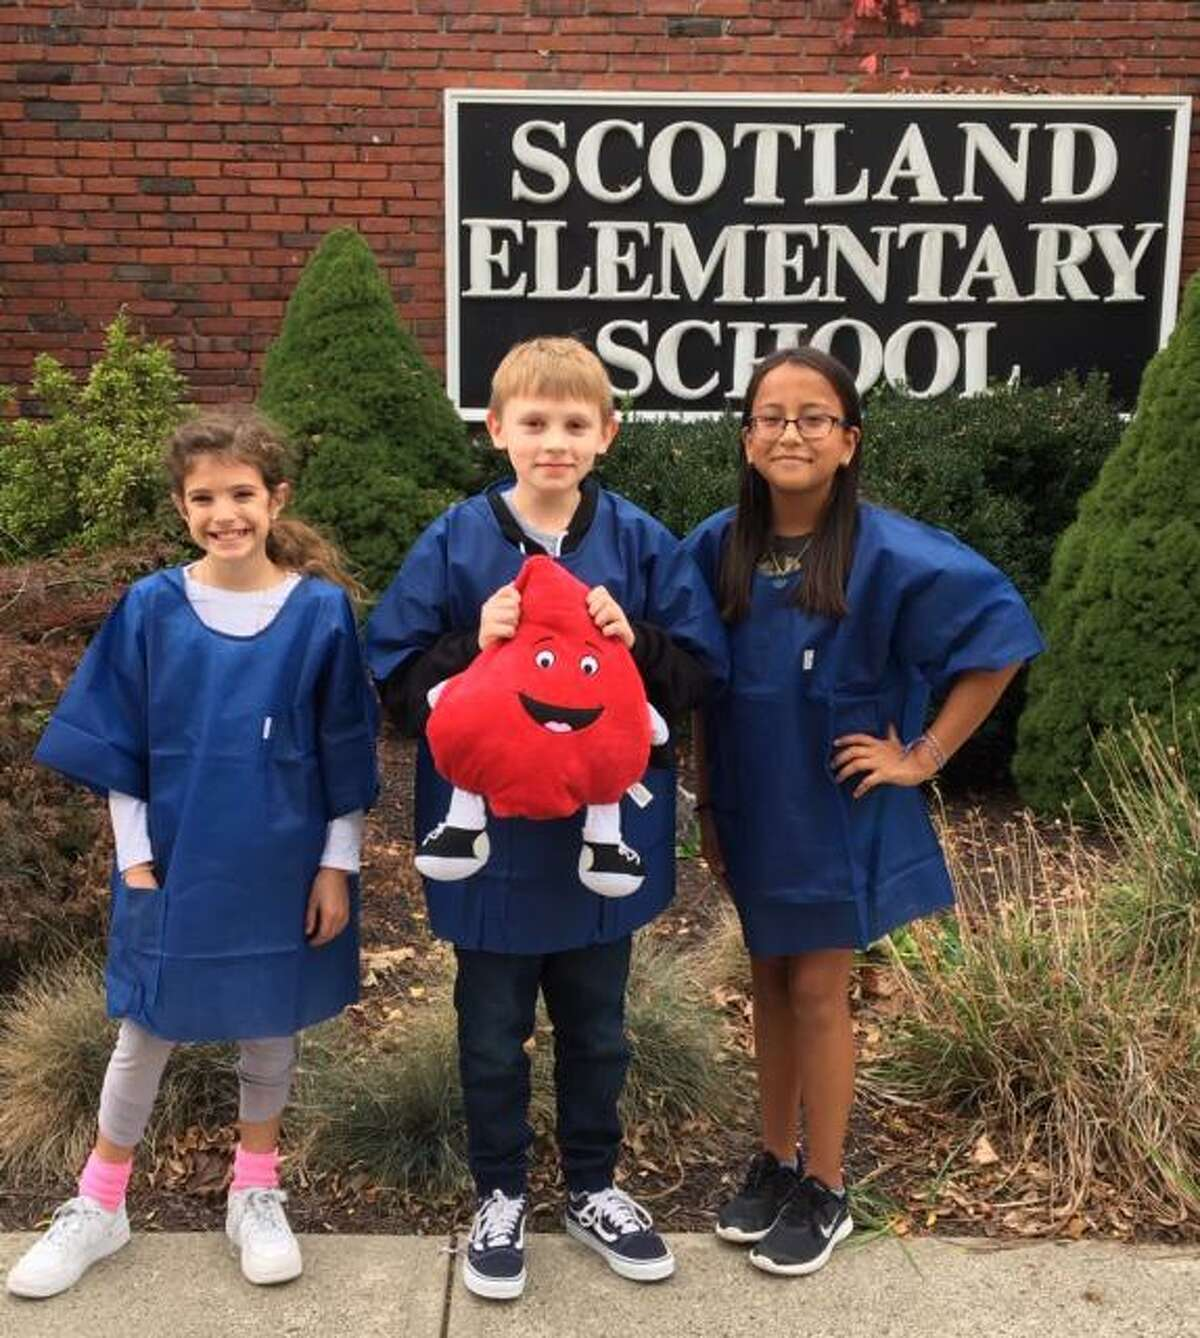 Scotland students, from left to right: Maddie Scholl, Dries Schoenly and Lia Munoz.